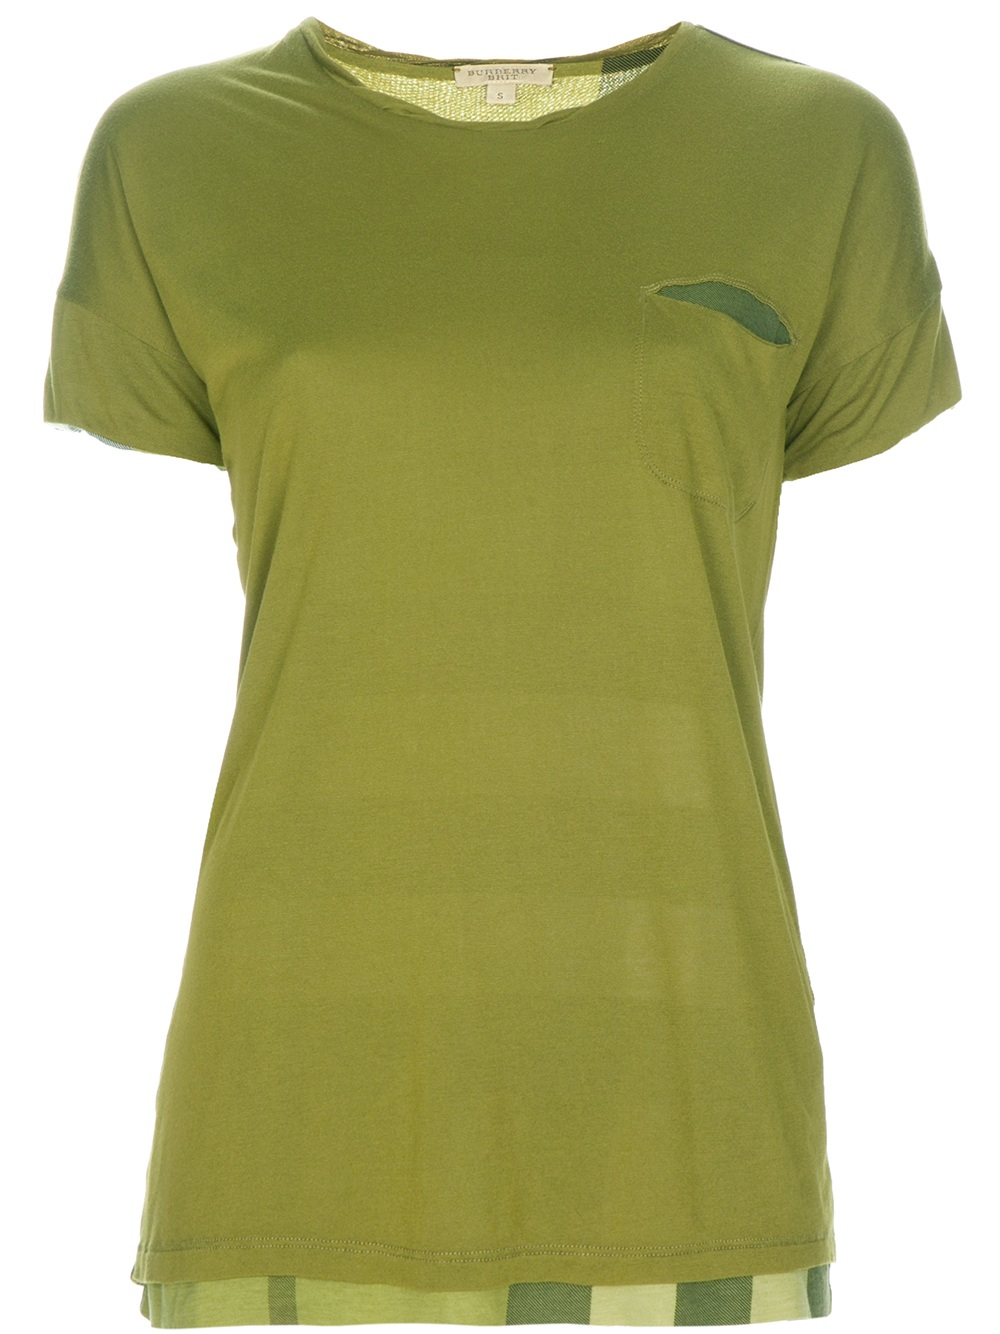 Burberry brit reversible t shirt in green lyst for Burberry brit green plaid shirt